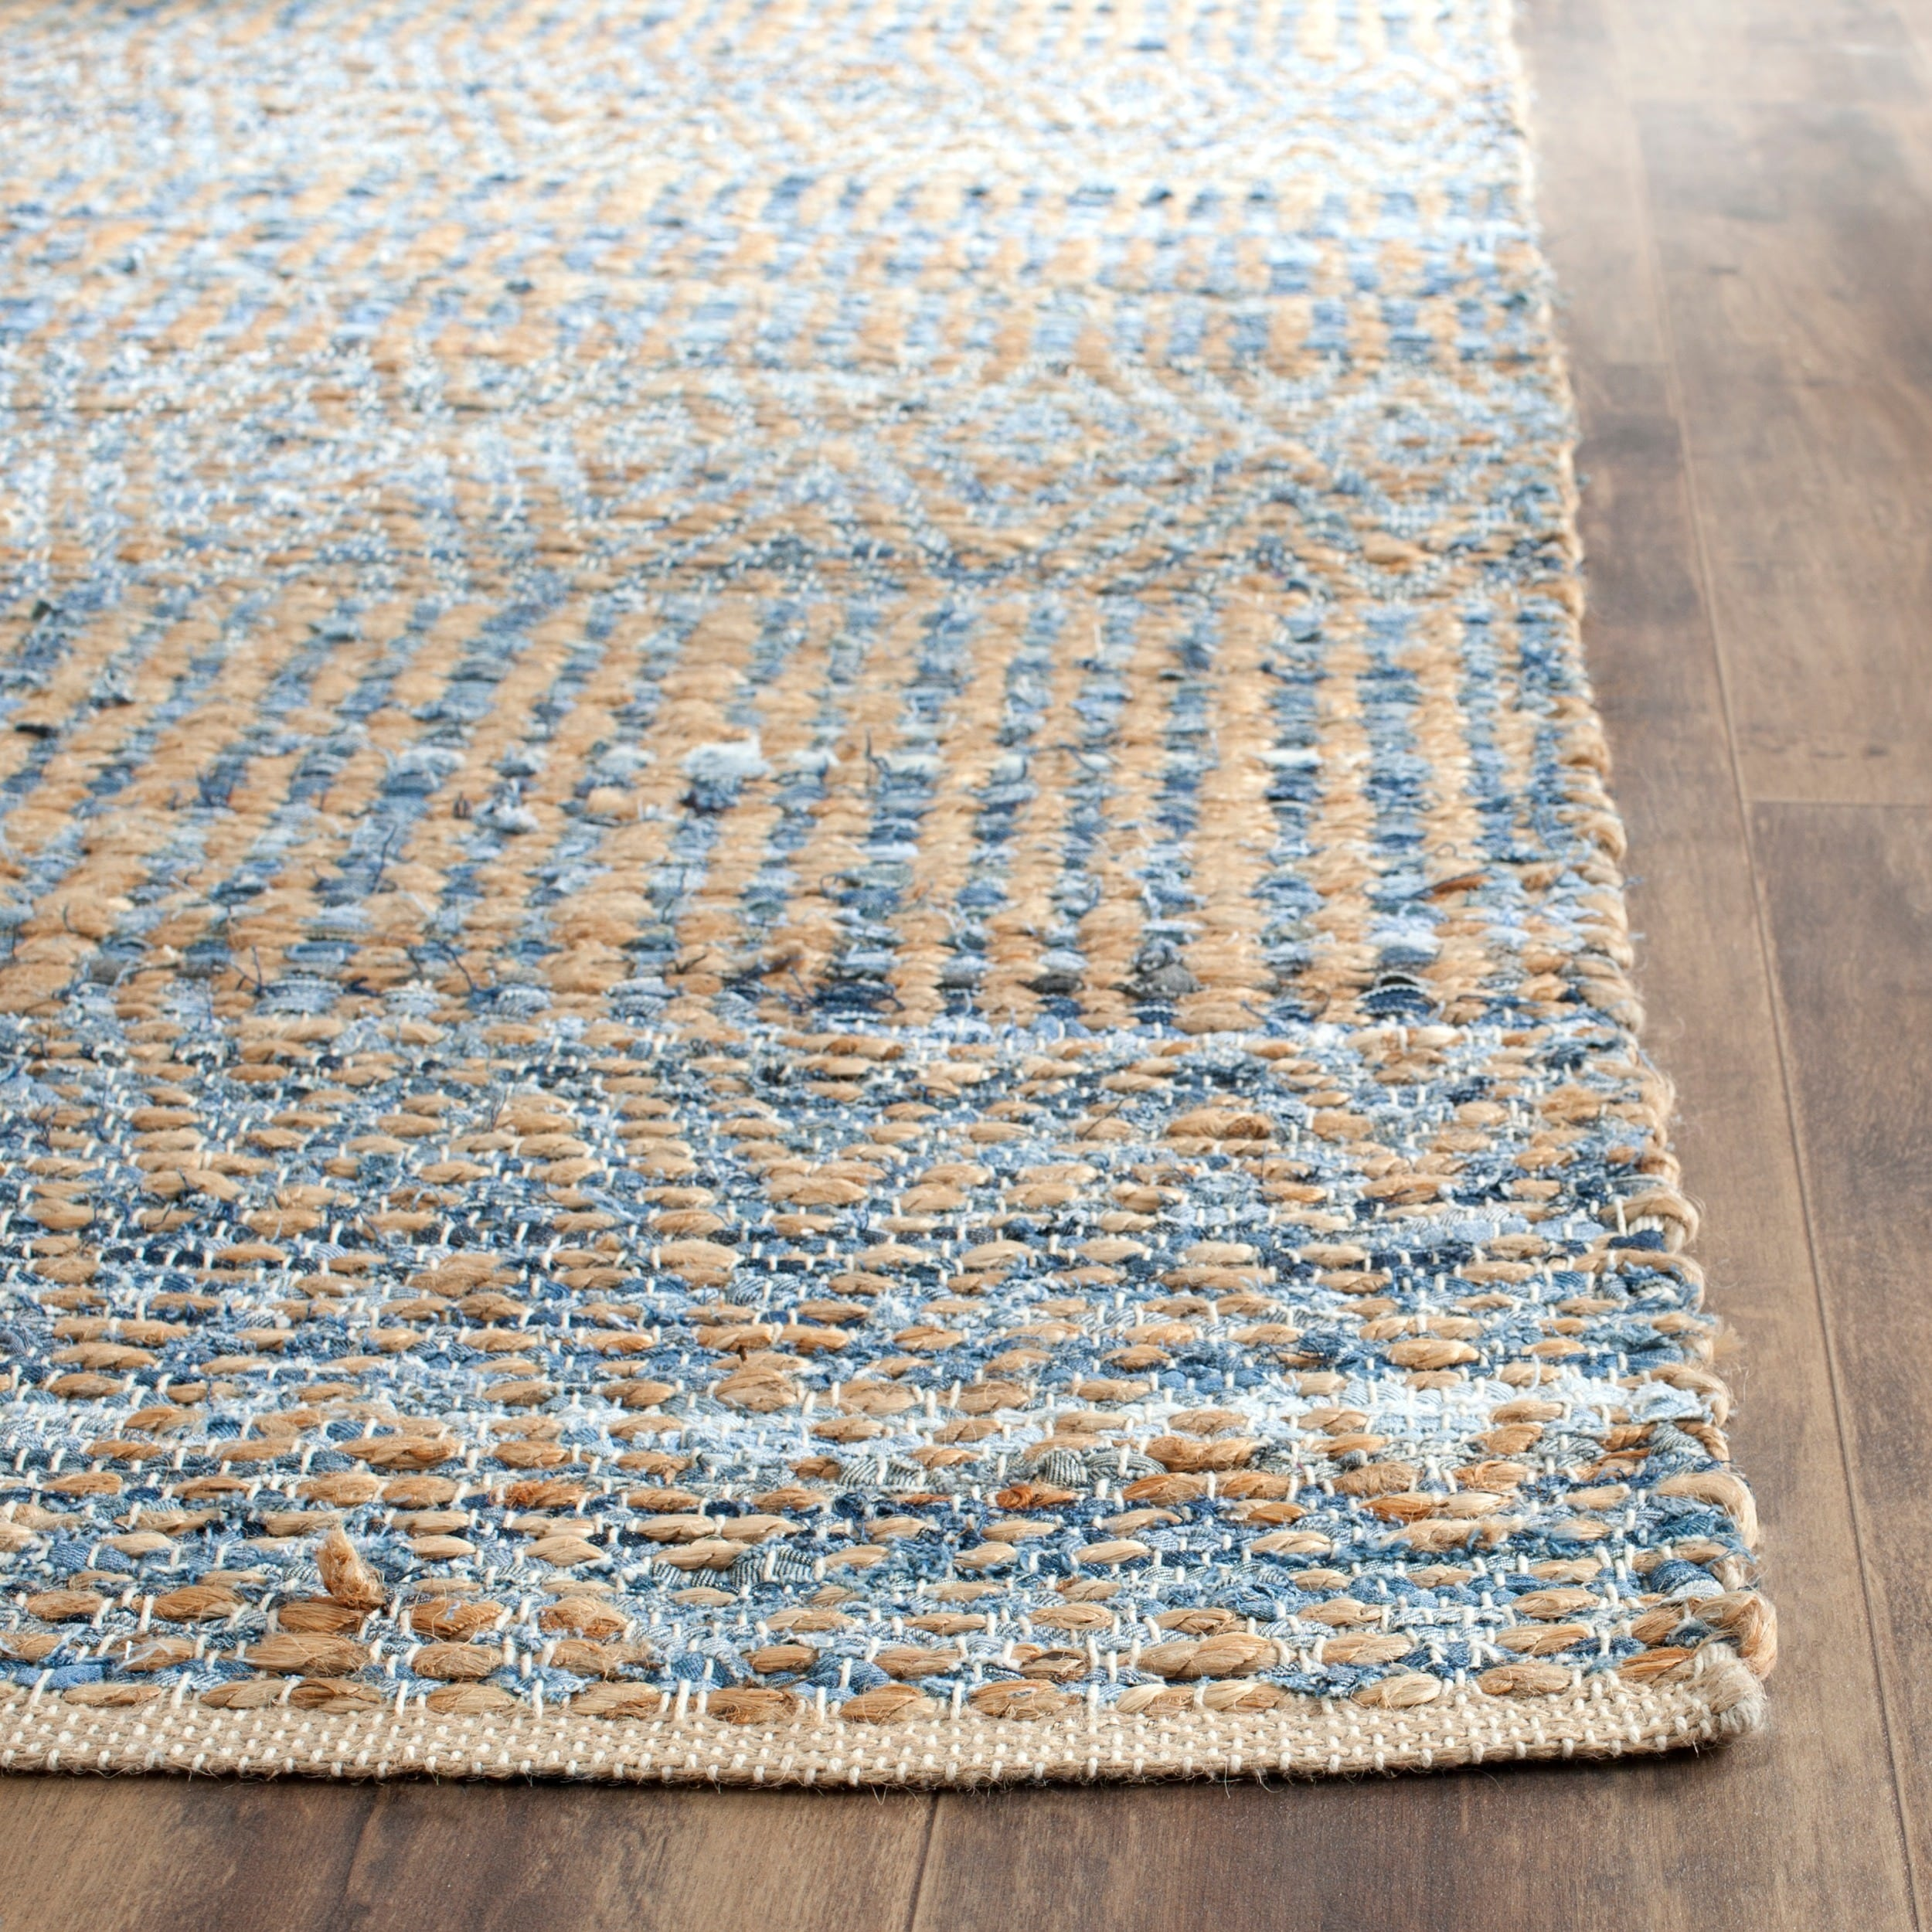 Safavieh Cape Cod Handmade Natural Blue Jute Fiber Rug 8 X 10 Free Shipping Today 15658287